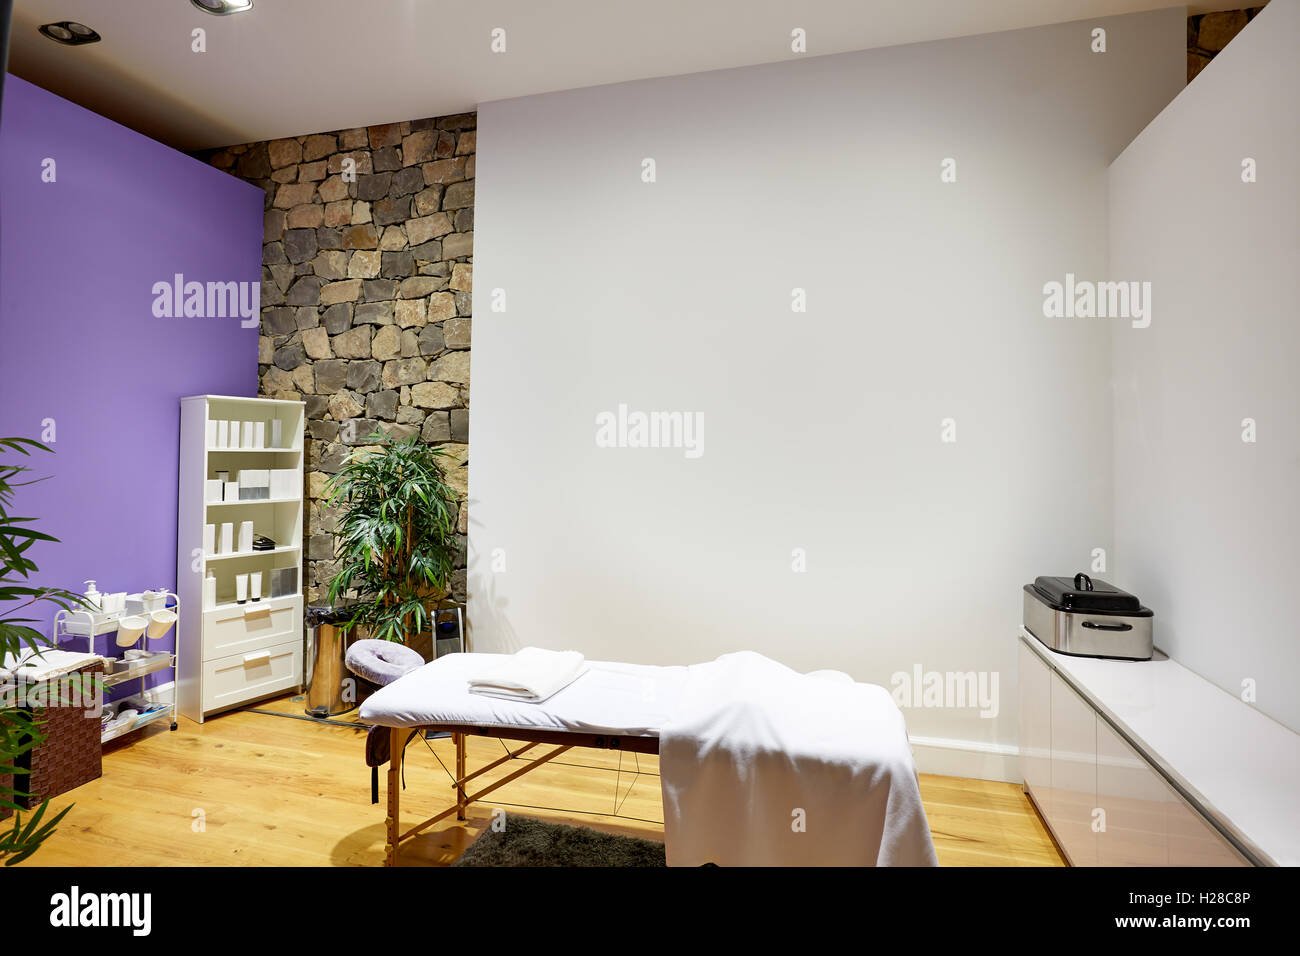 Massage room with massage table and products with stone wall Stock ...